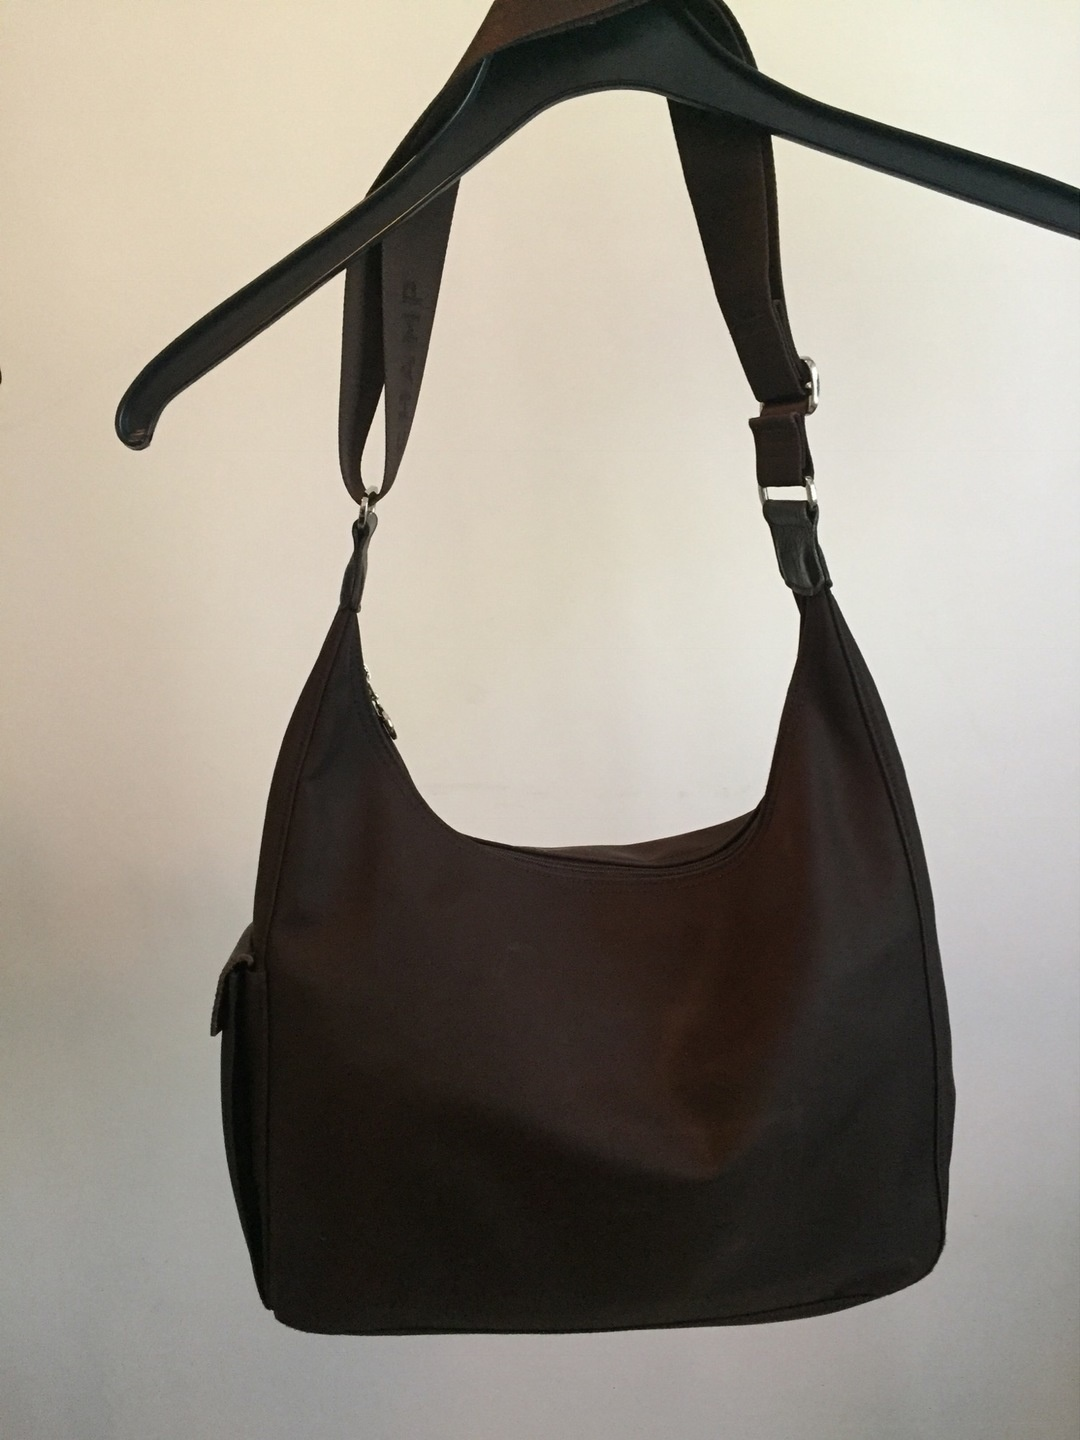 Women's bags & purses - LONGCHAMP photo 2